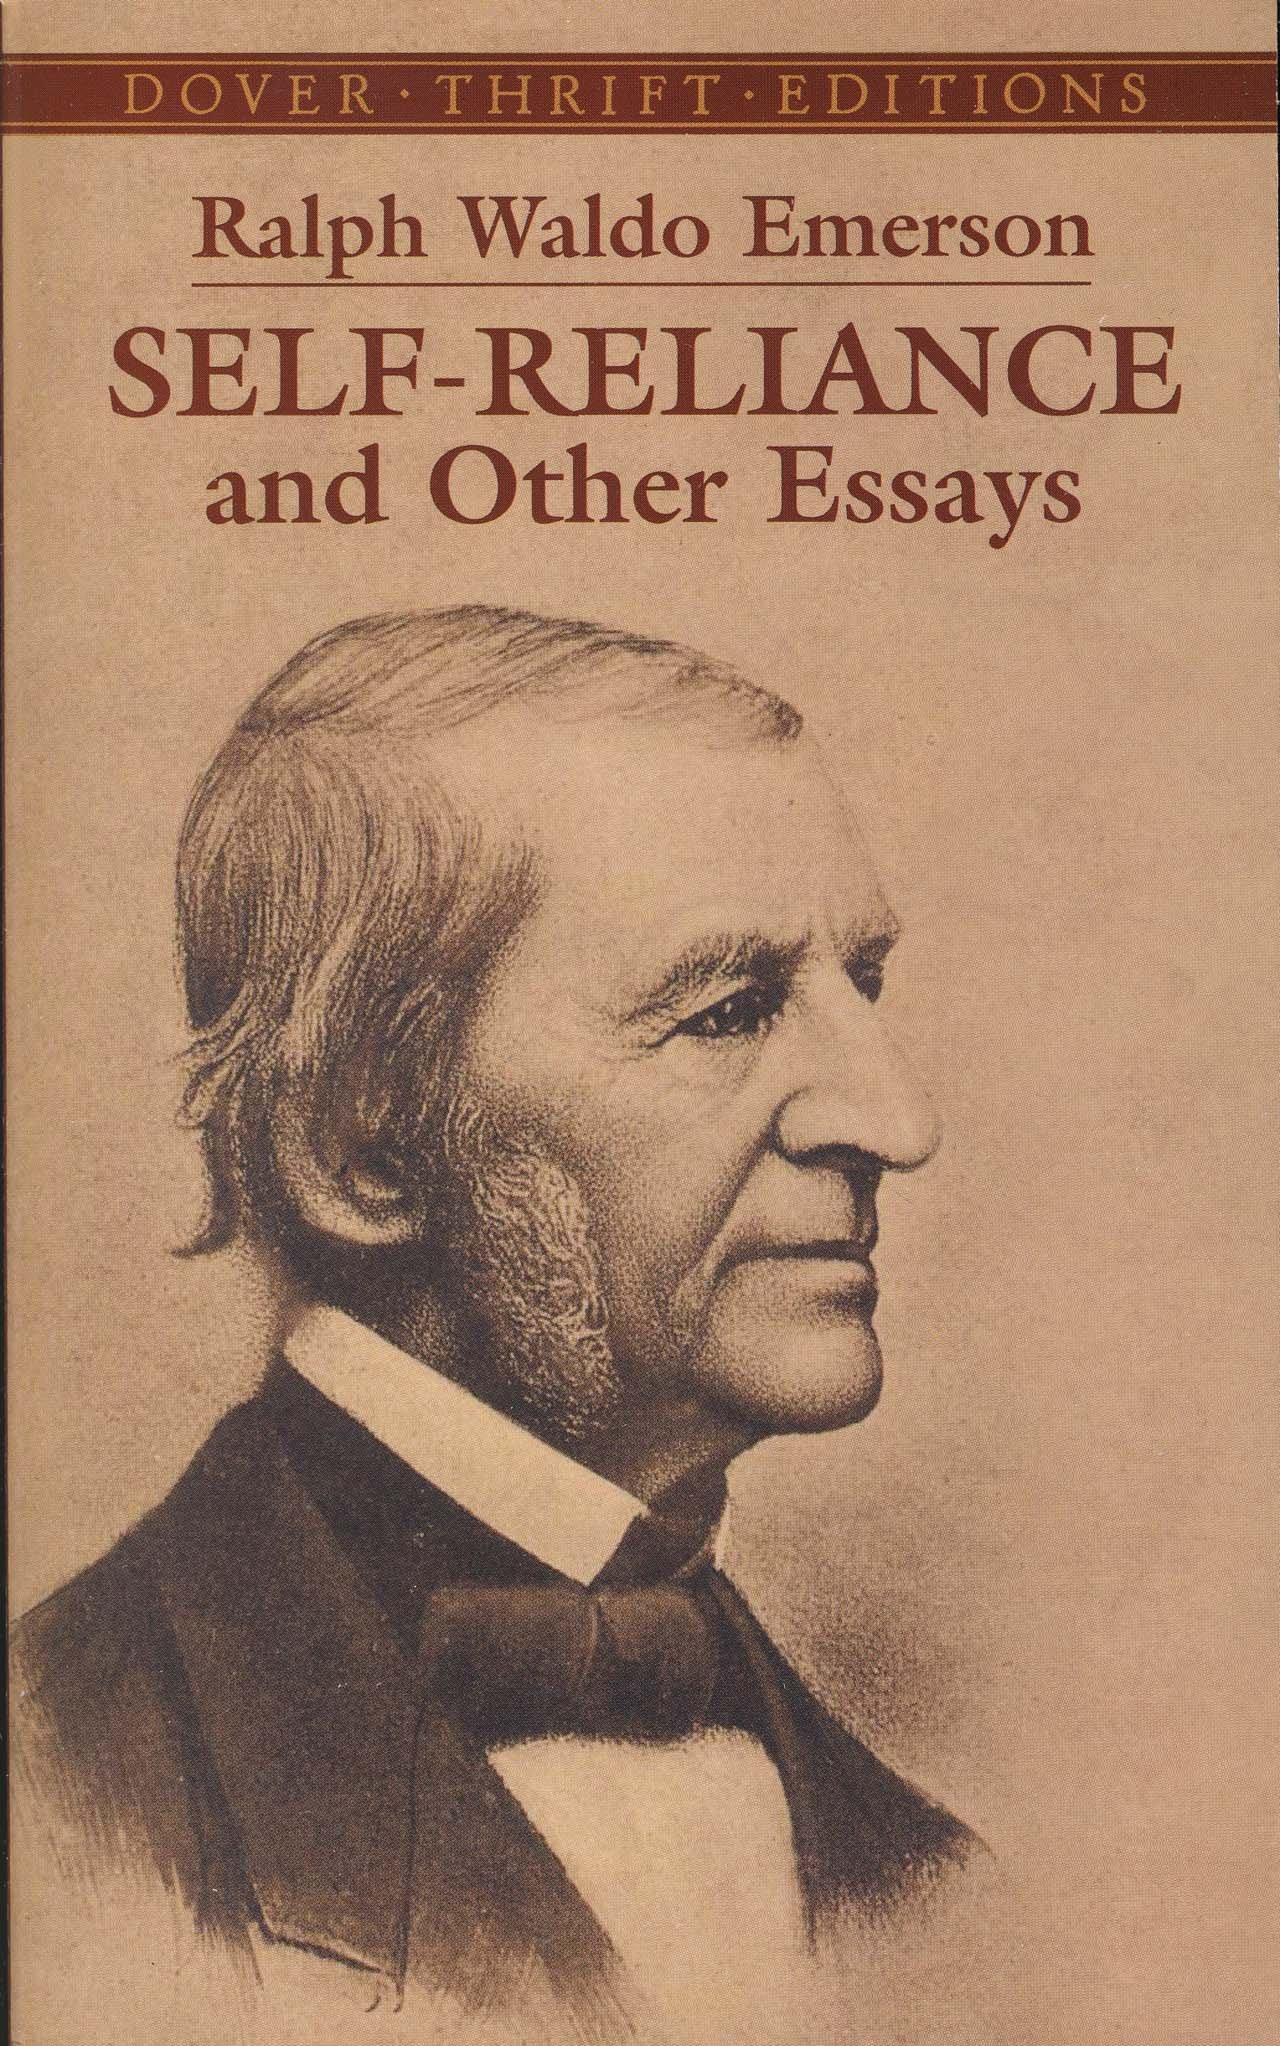 002 Essay Example Ralph Waldo Emerson Essays Unusual Nature And Selected By Pdf Download First Second Series Full